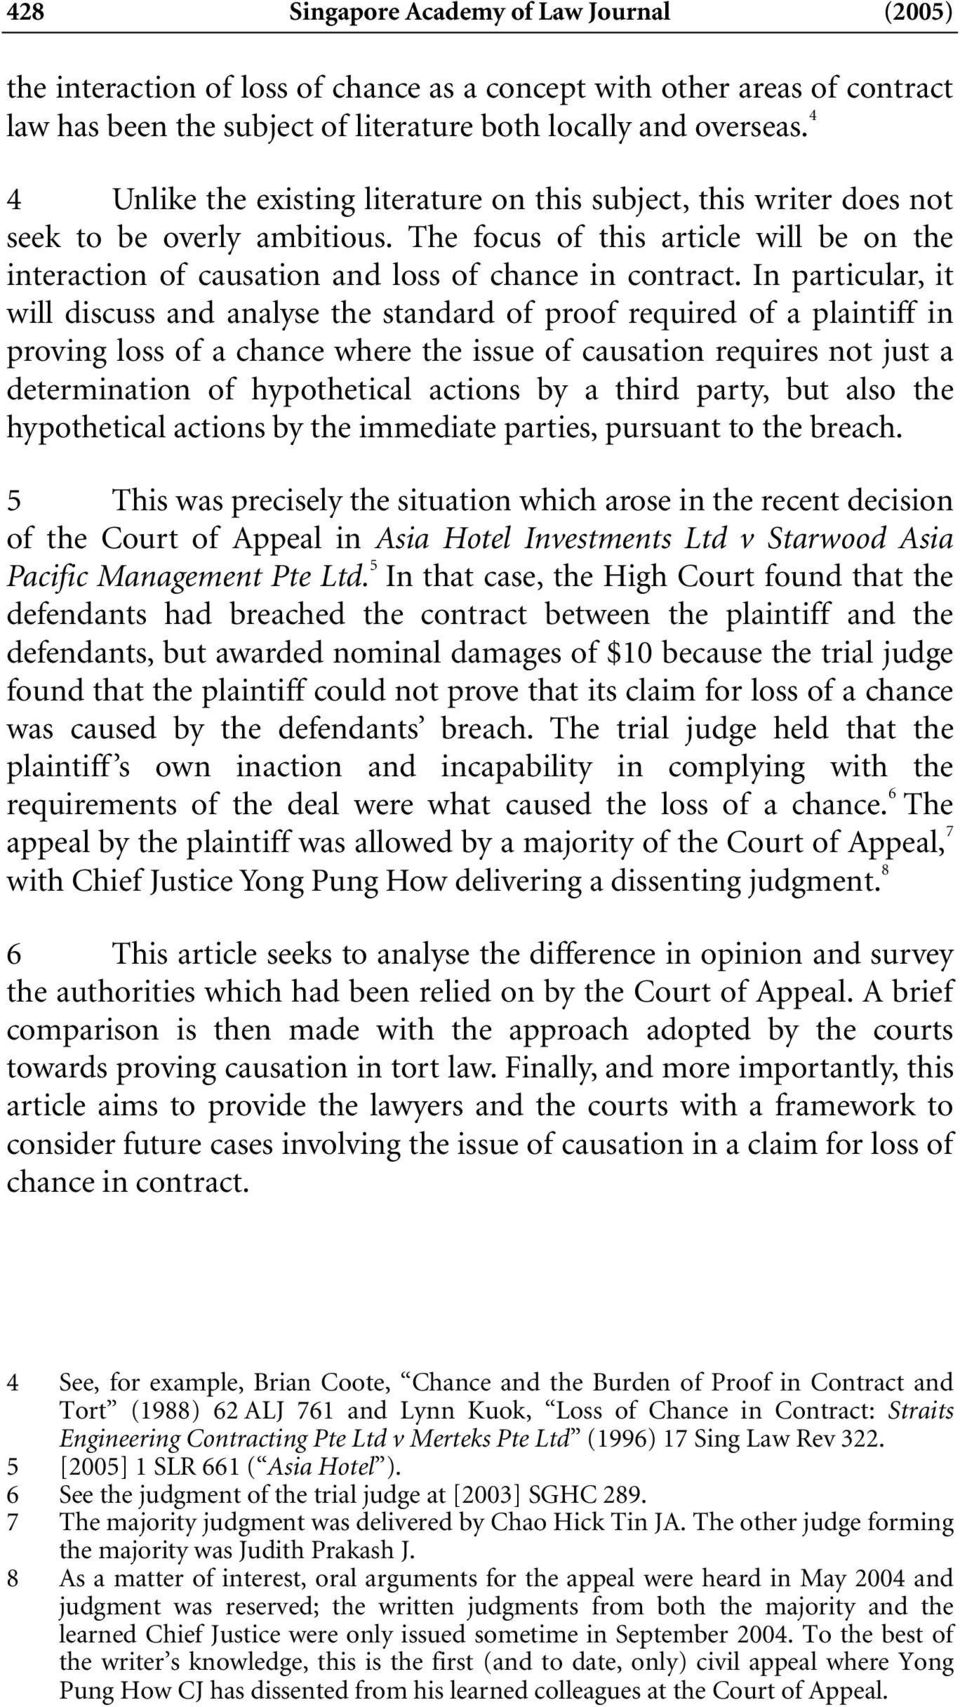 In particular, it will discuss and analyse the standard of proof required of a plaintiff in proving loss of a chance where the issue of causation requires not just a determination of hypothetical